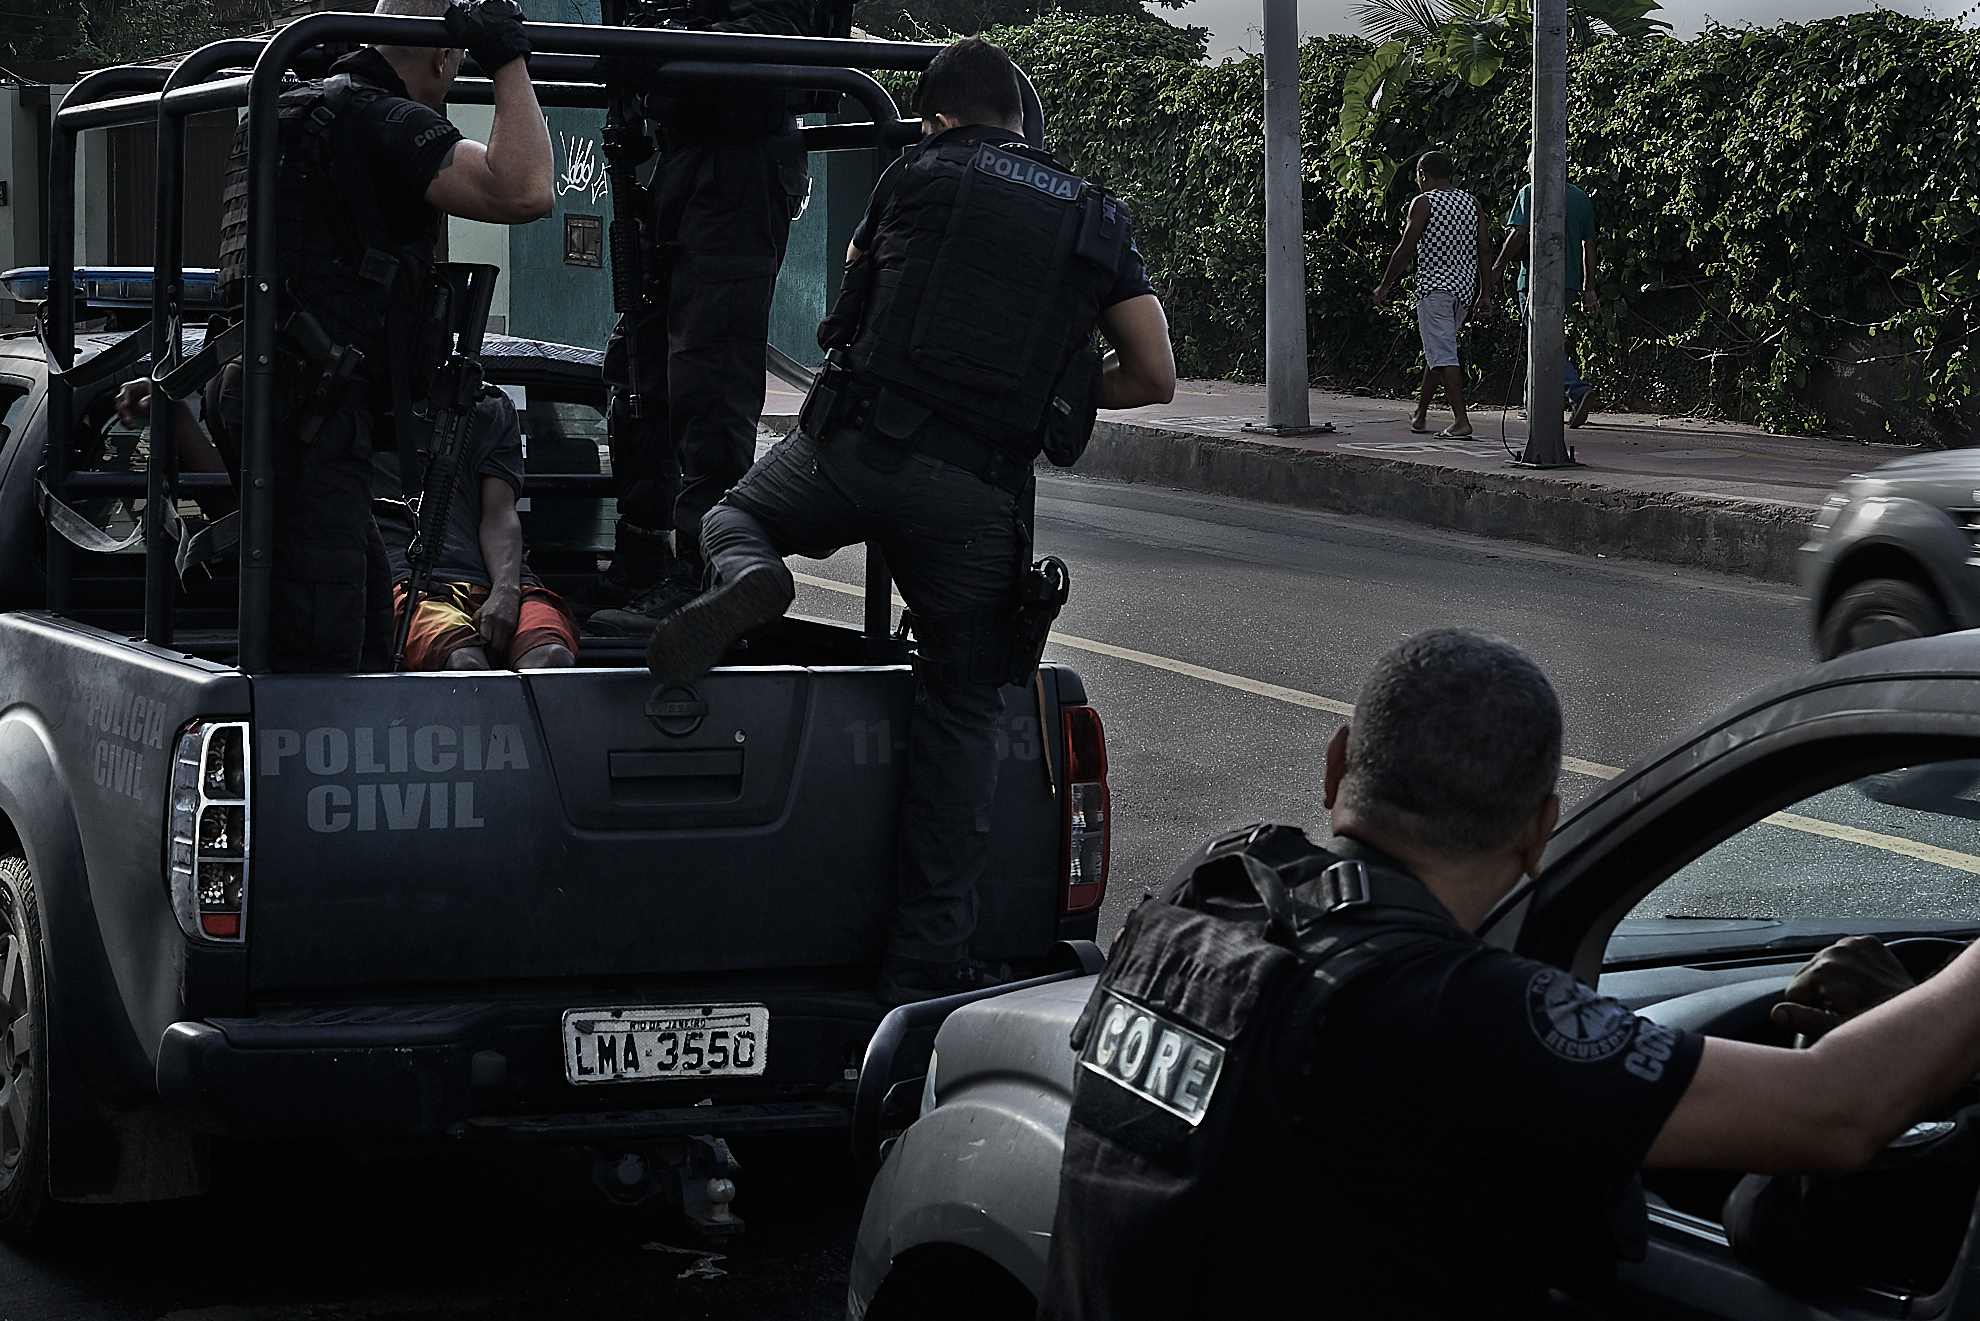 Member's of Rio's CORE special operation's unit during a search in Vidigal for wanted individuals. (Photo: C.H. Gardiner)